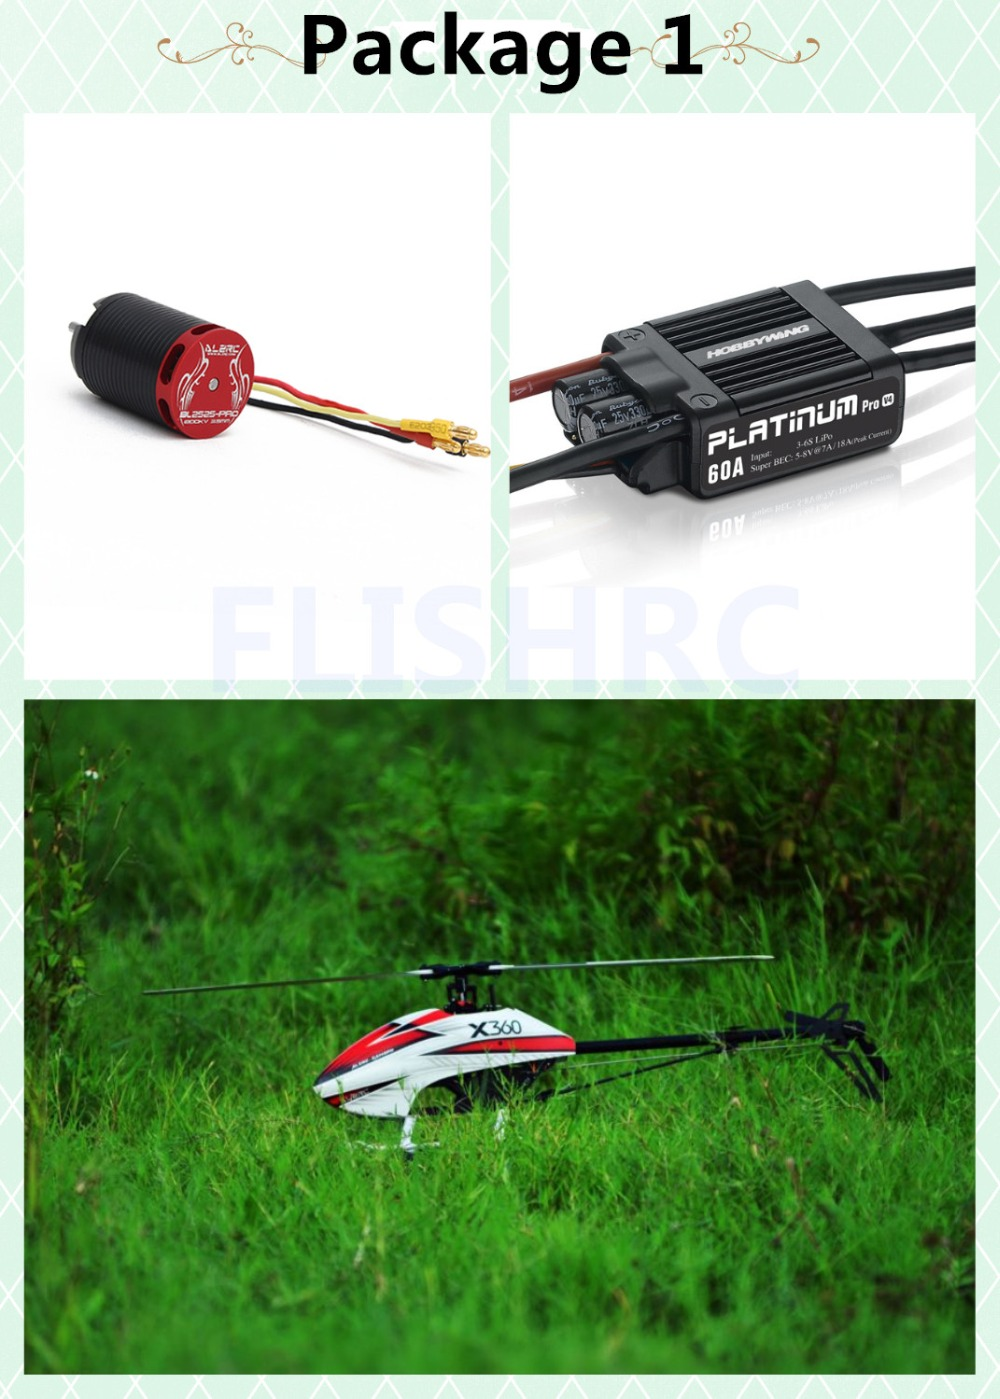 In Stock 2018 The Newest ALZRC-X360 FAST FBL KIT Helicopter (with Electronic Equipment) for GAUI X3 alzrc devil x360 metal radius arm set red x360 helicopter parts fit gaui x3 dx360 09ma